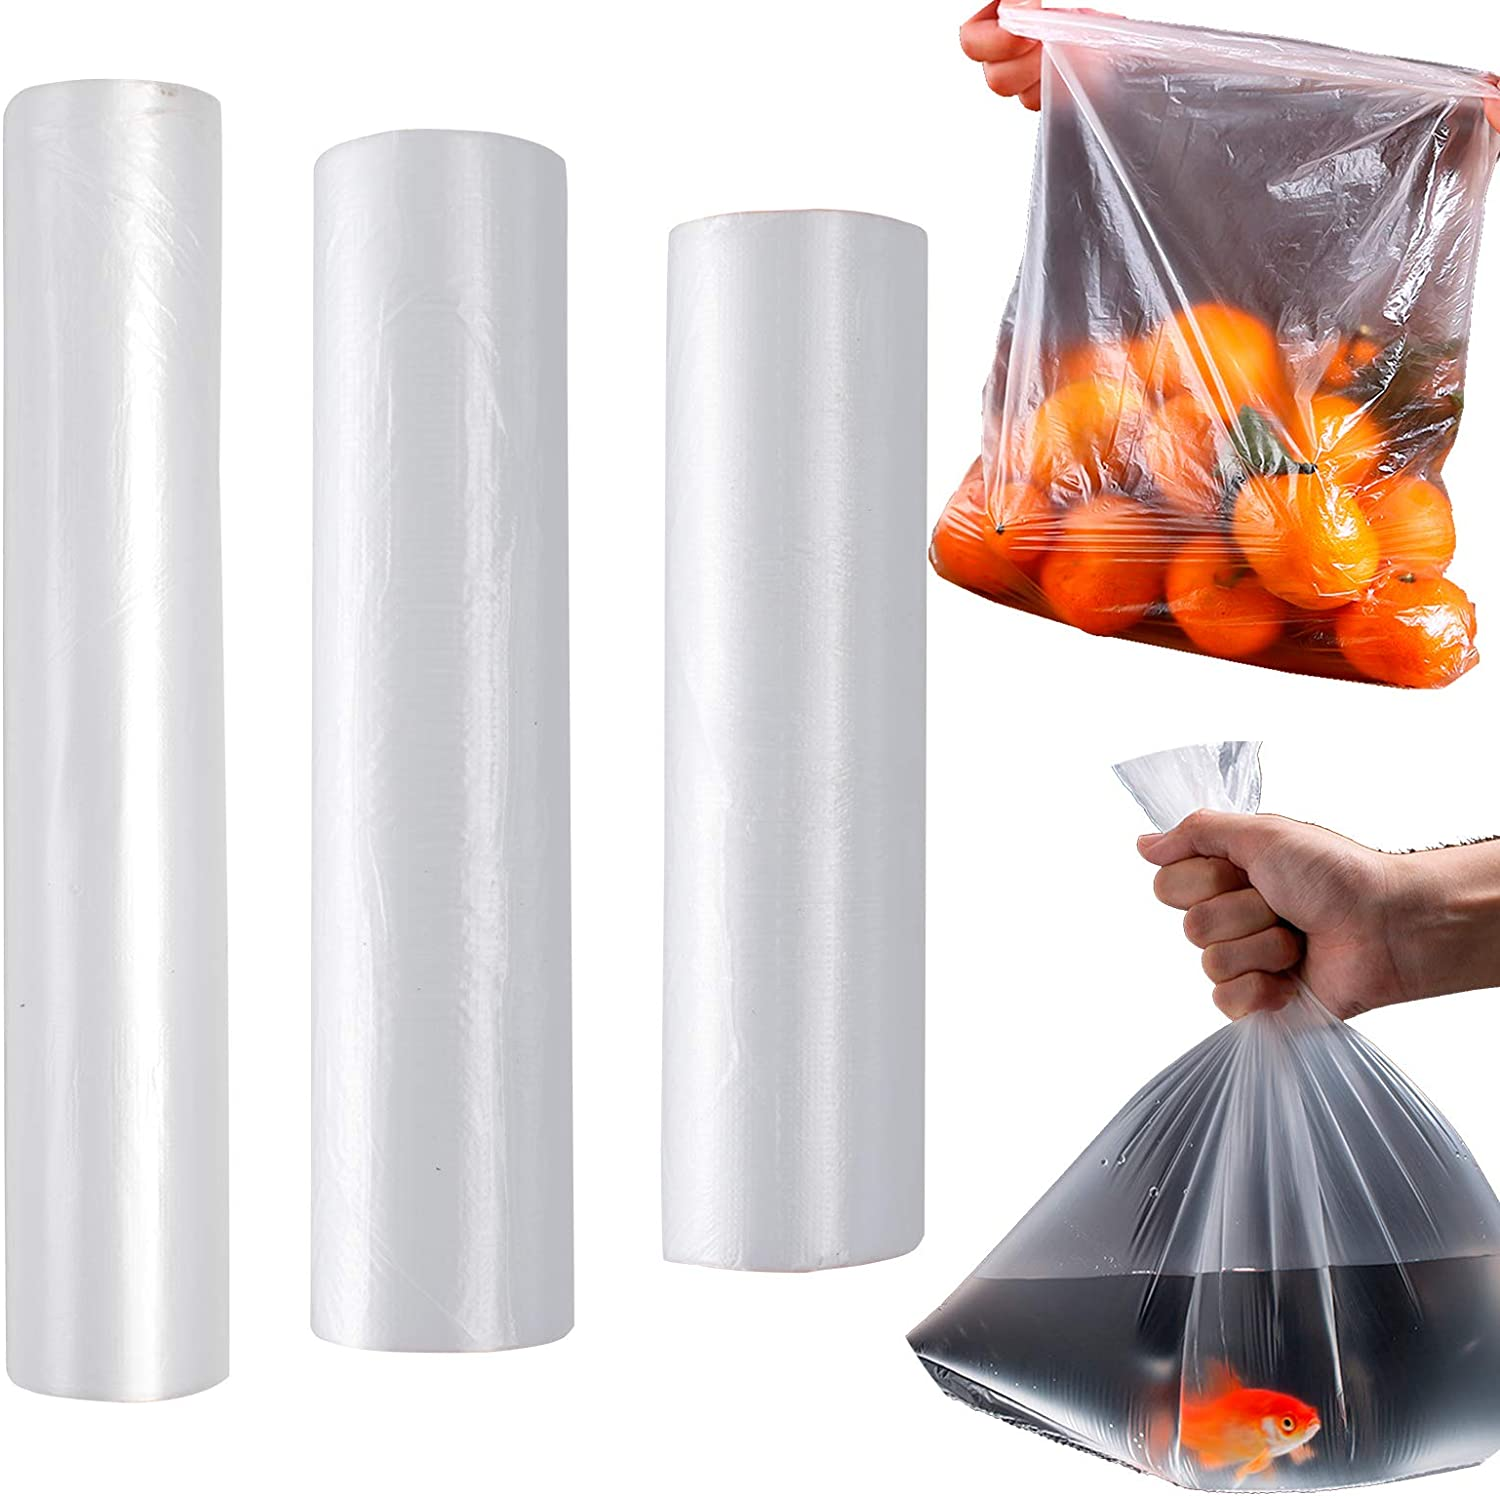 Plastic Produce Bag on a Roll Clear Plastic Bags Polyethylene Bags Plastic Storage Bags for Food, Fruit, Vegetables, Meat, Pet Bags, Diapers Bags One Roll 80 Bags (3 Roll)